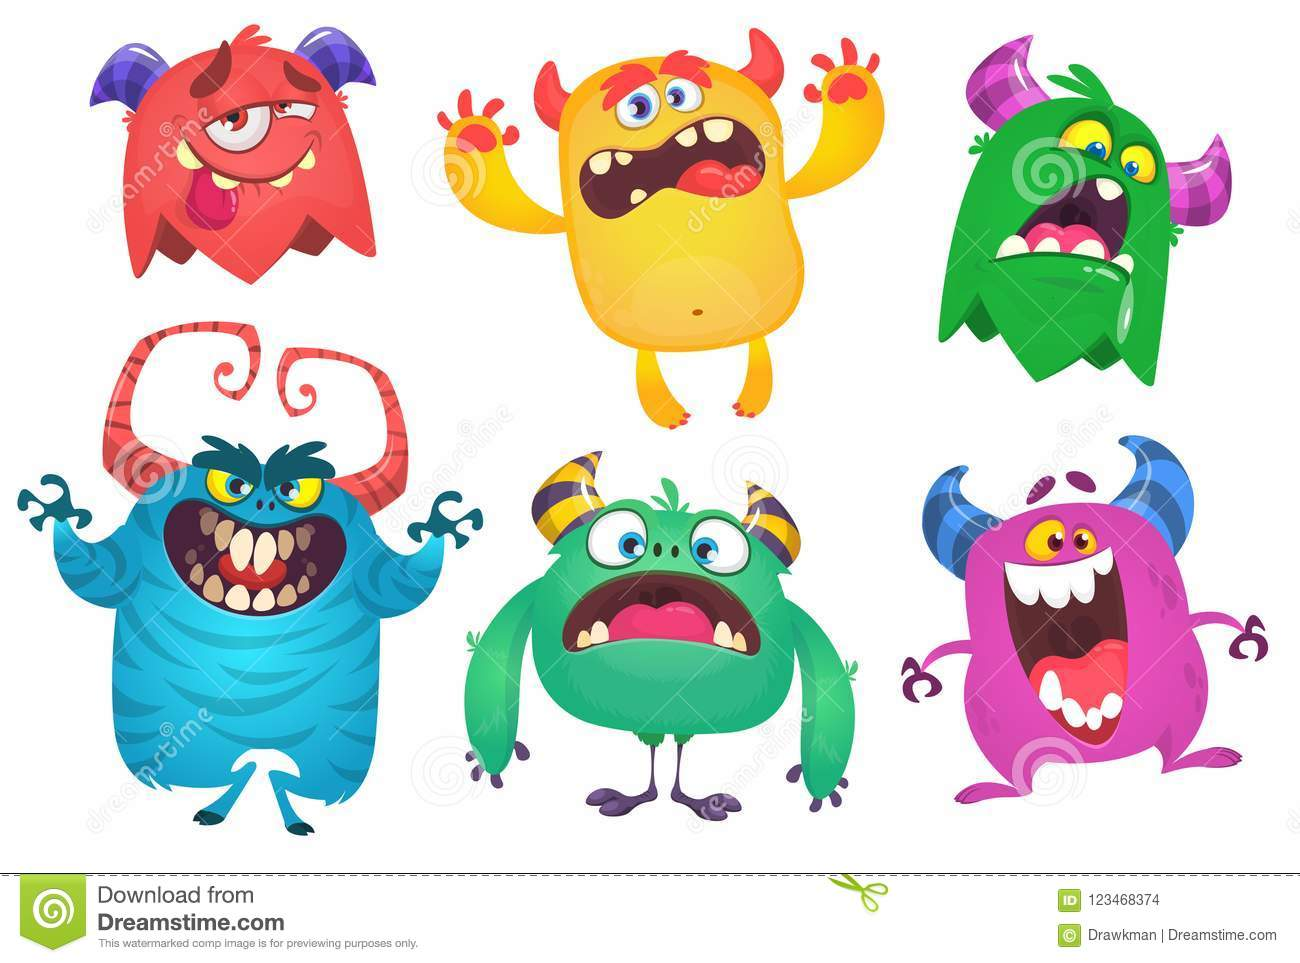 Cartoon Monsters. Vector set of cartoon monsters isolated. Design for print, party decoration, t-shirt, illustration, logo, emblem